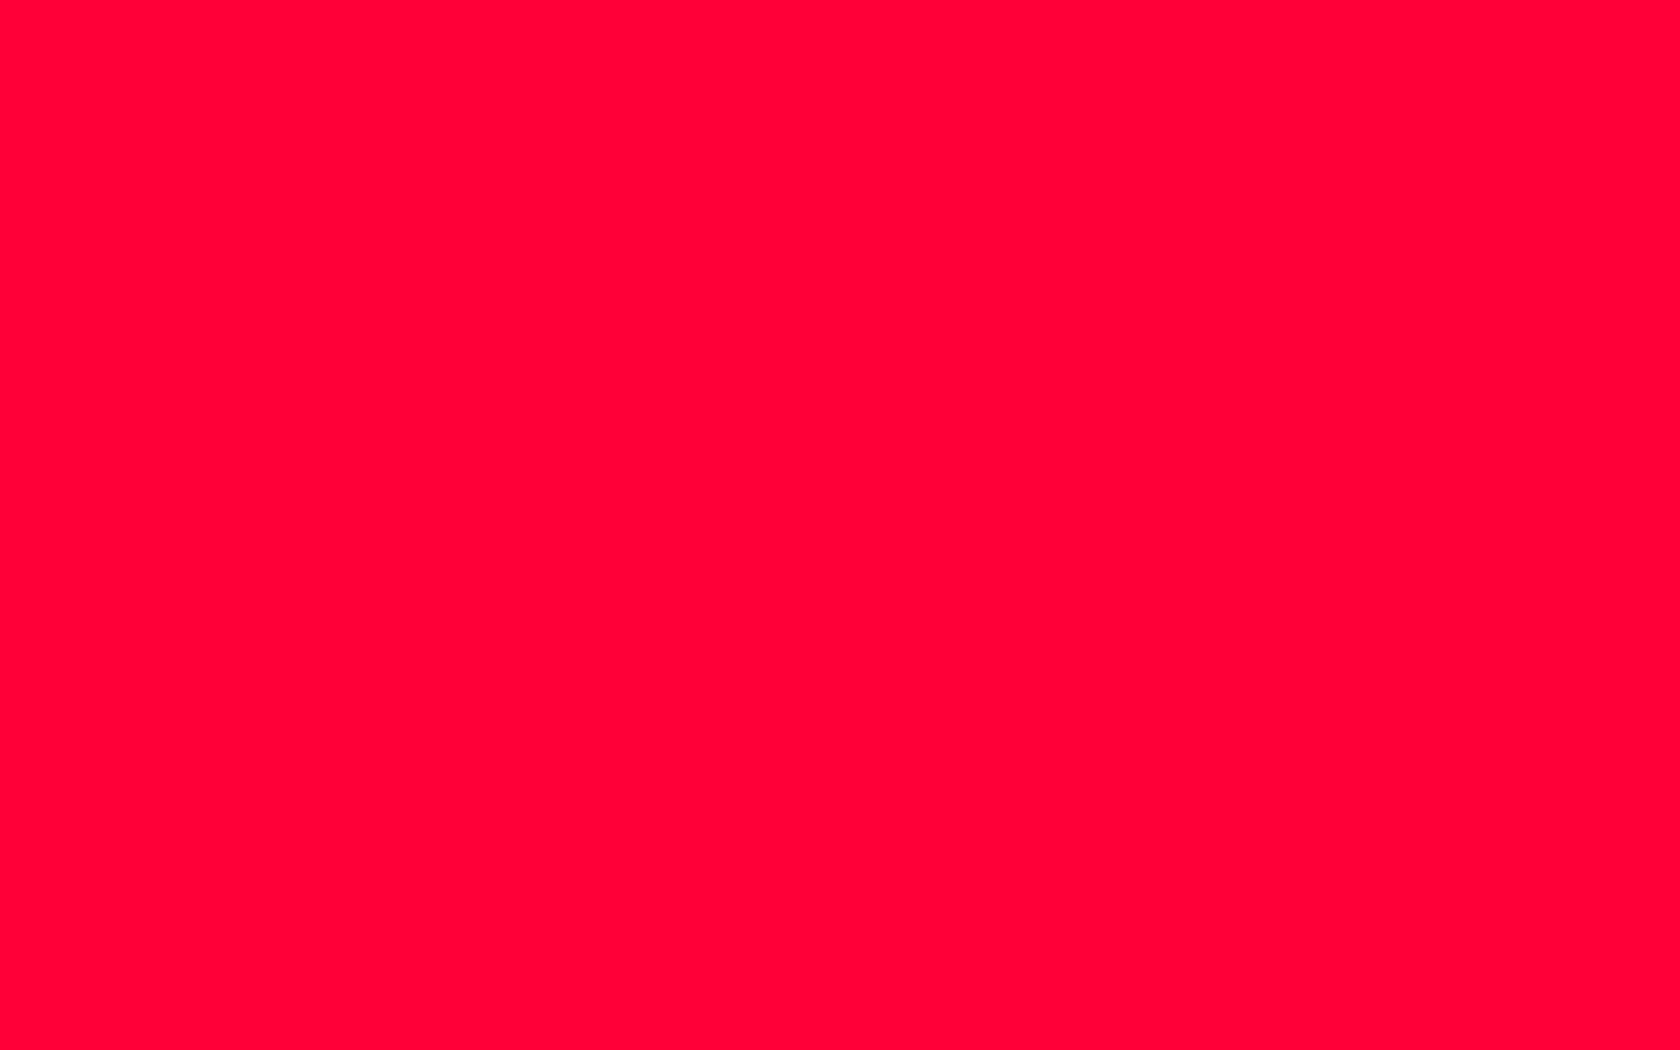 1680x1050 Carmine Red Solid Color Background